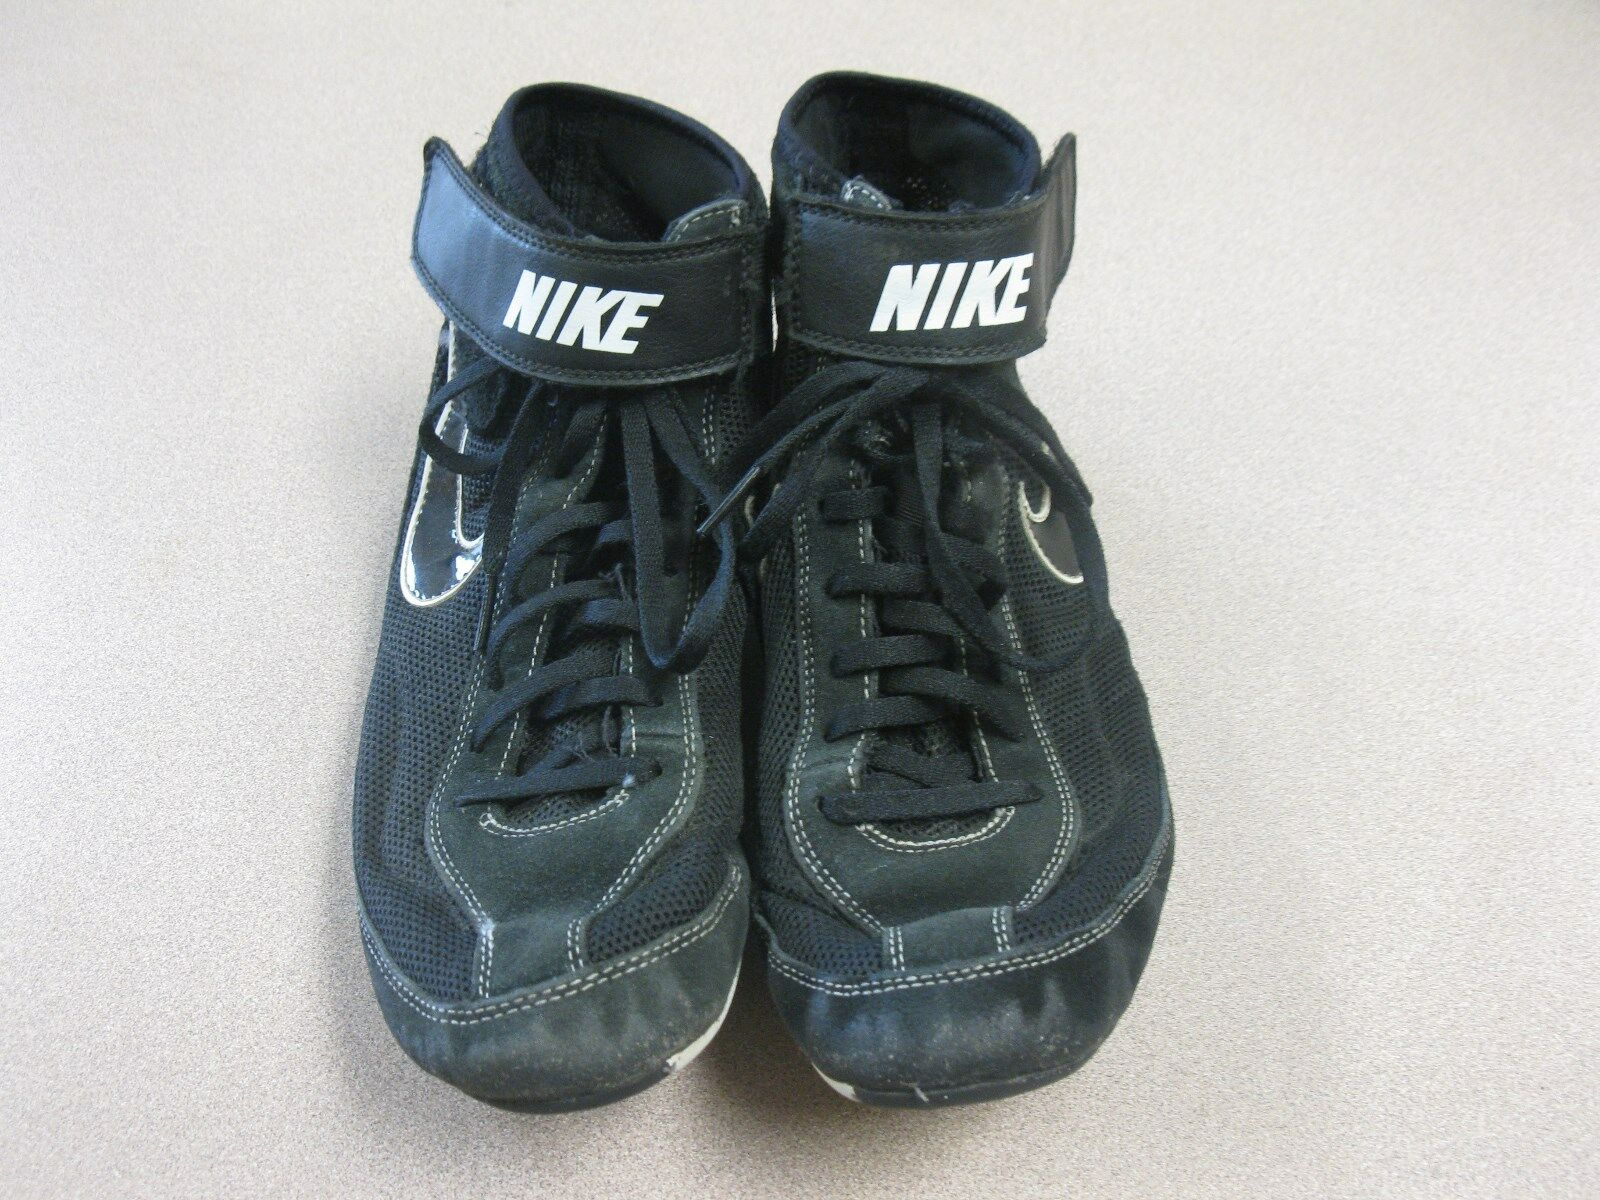 Nike  366683 001 Black White  Speed Sweep VII Wrestling Shoes size 10 best-selling model of the brand